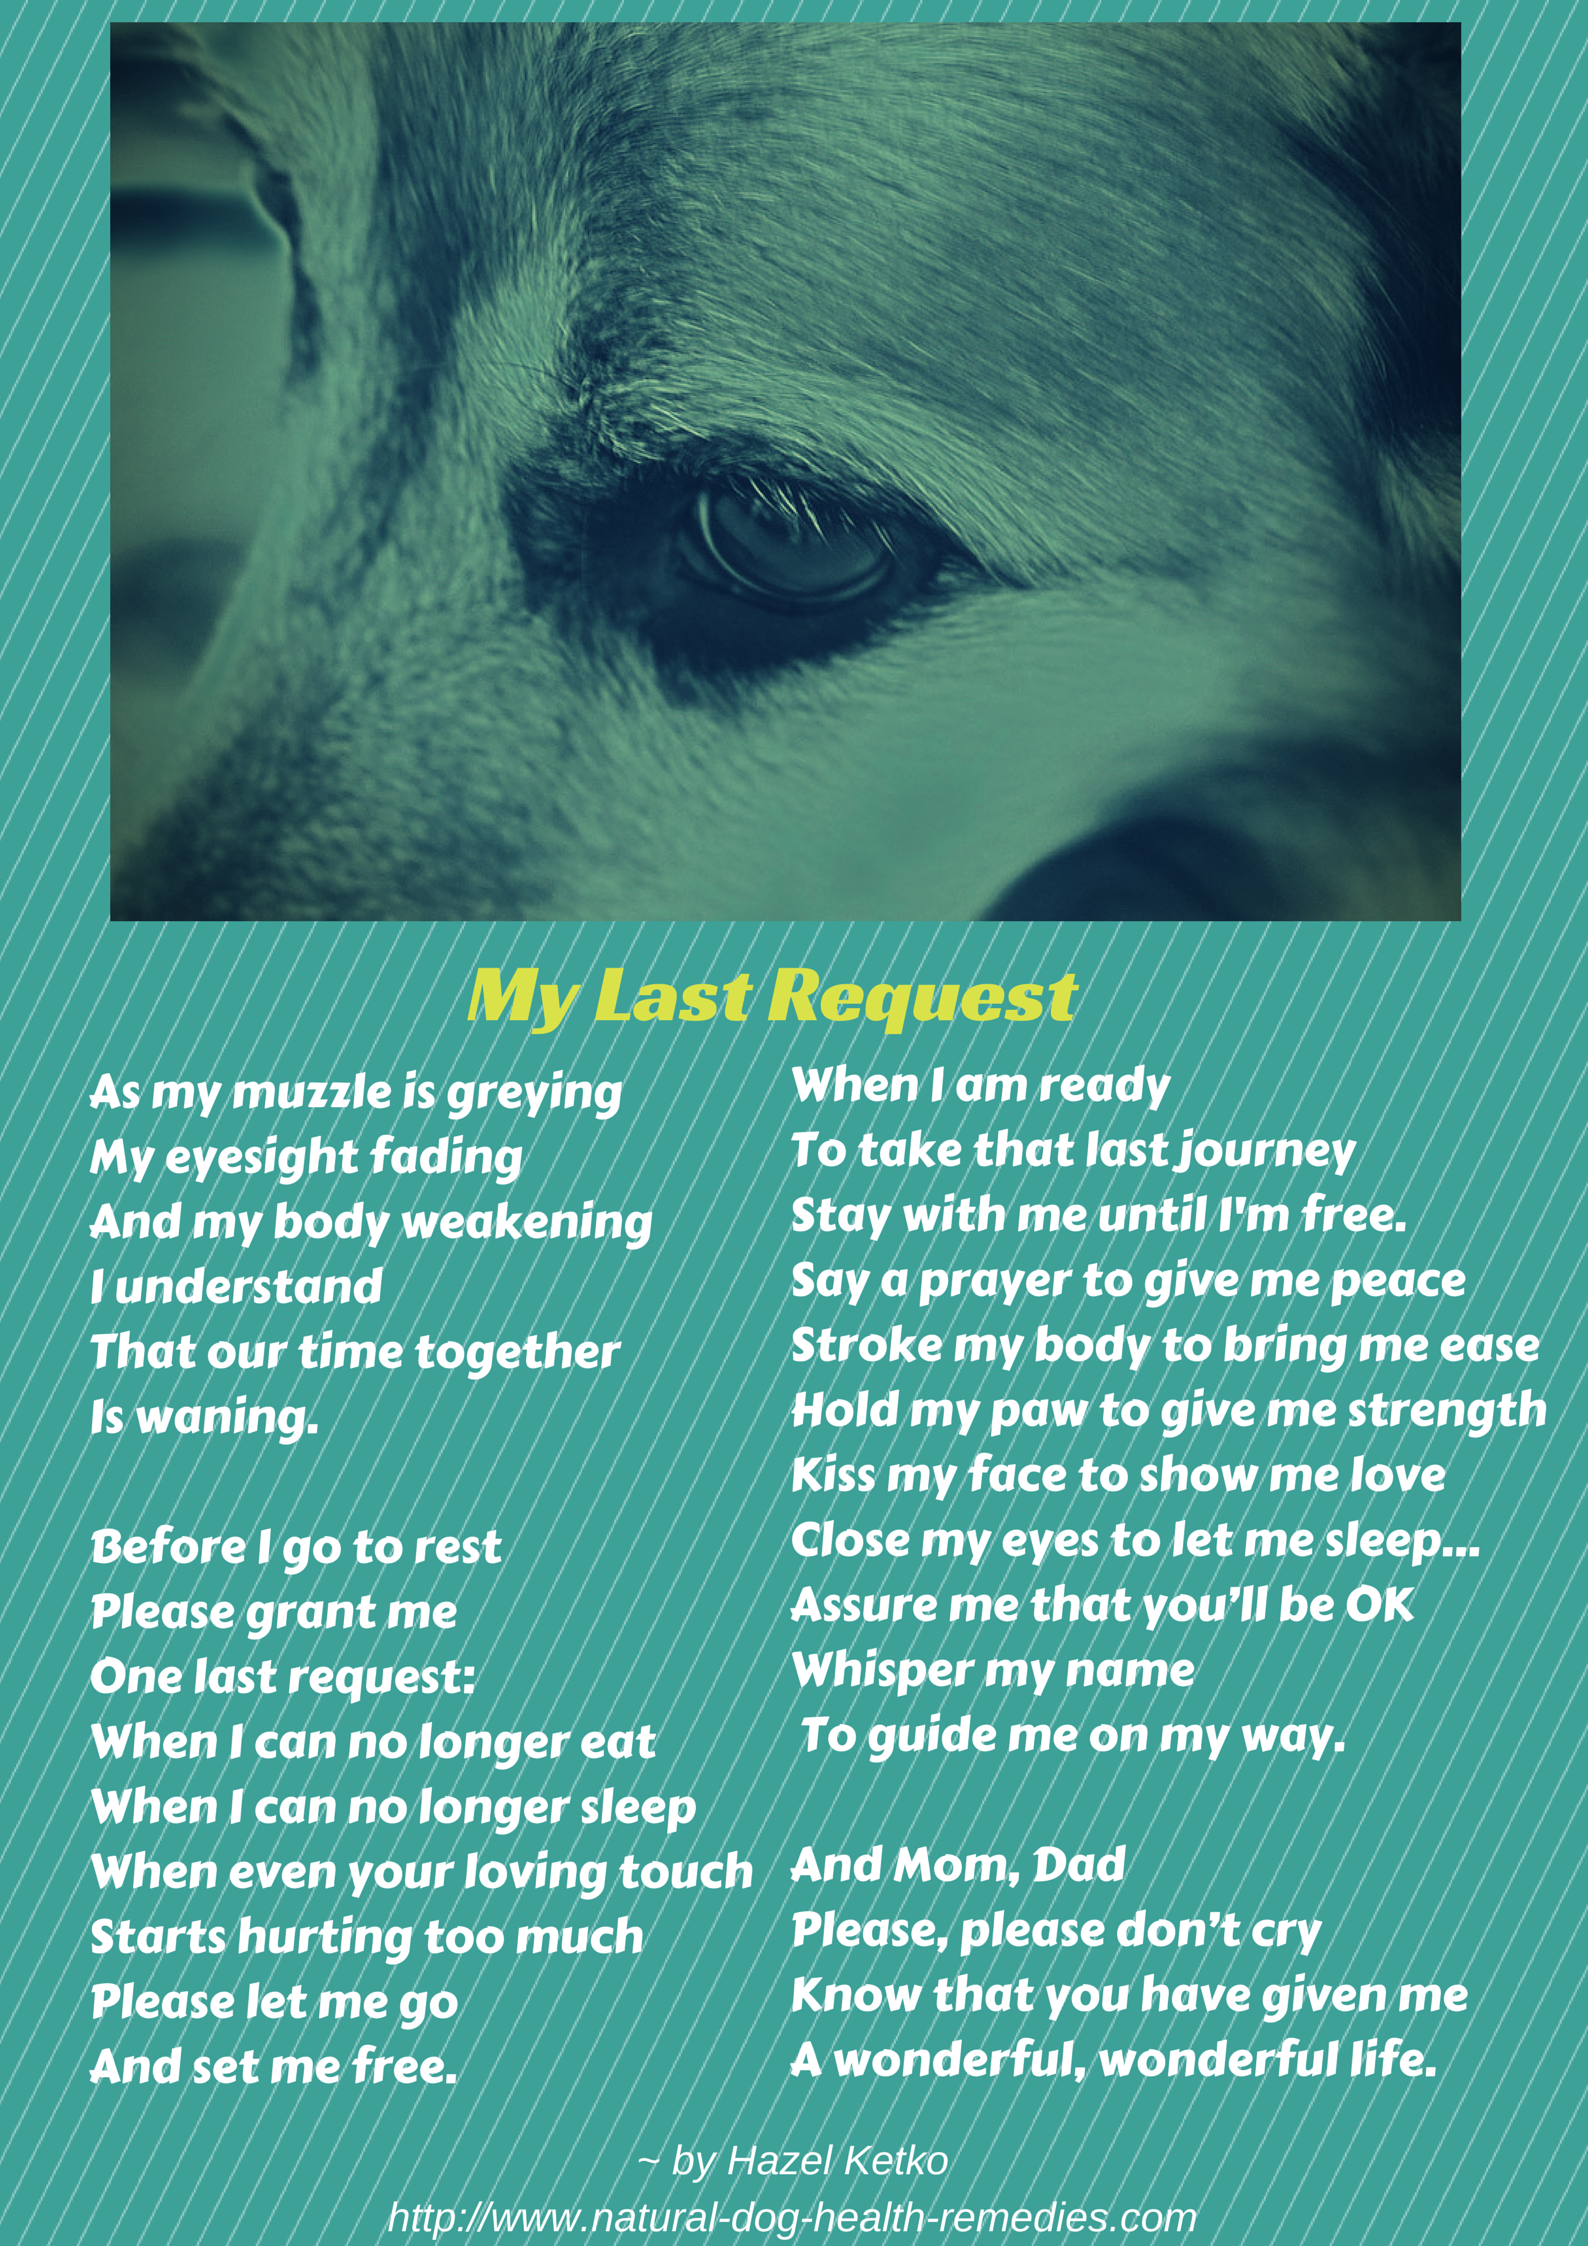 A poem for all dog parents, especially those with aging